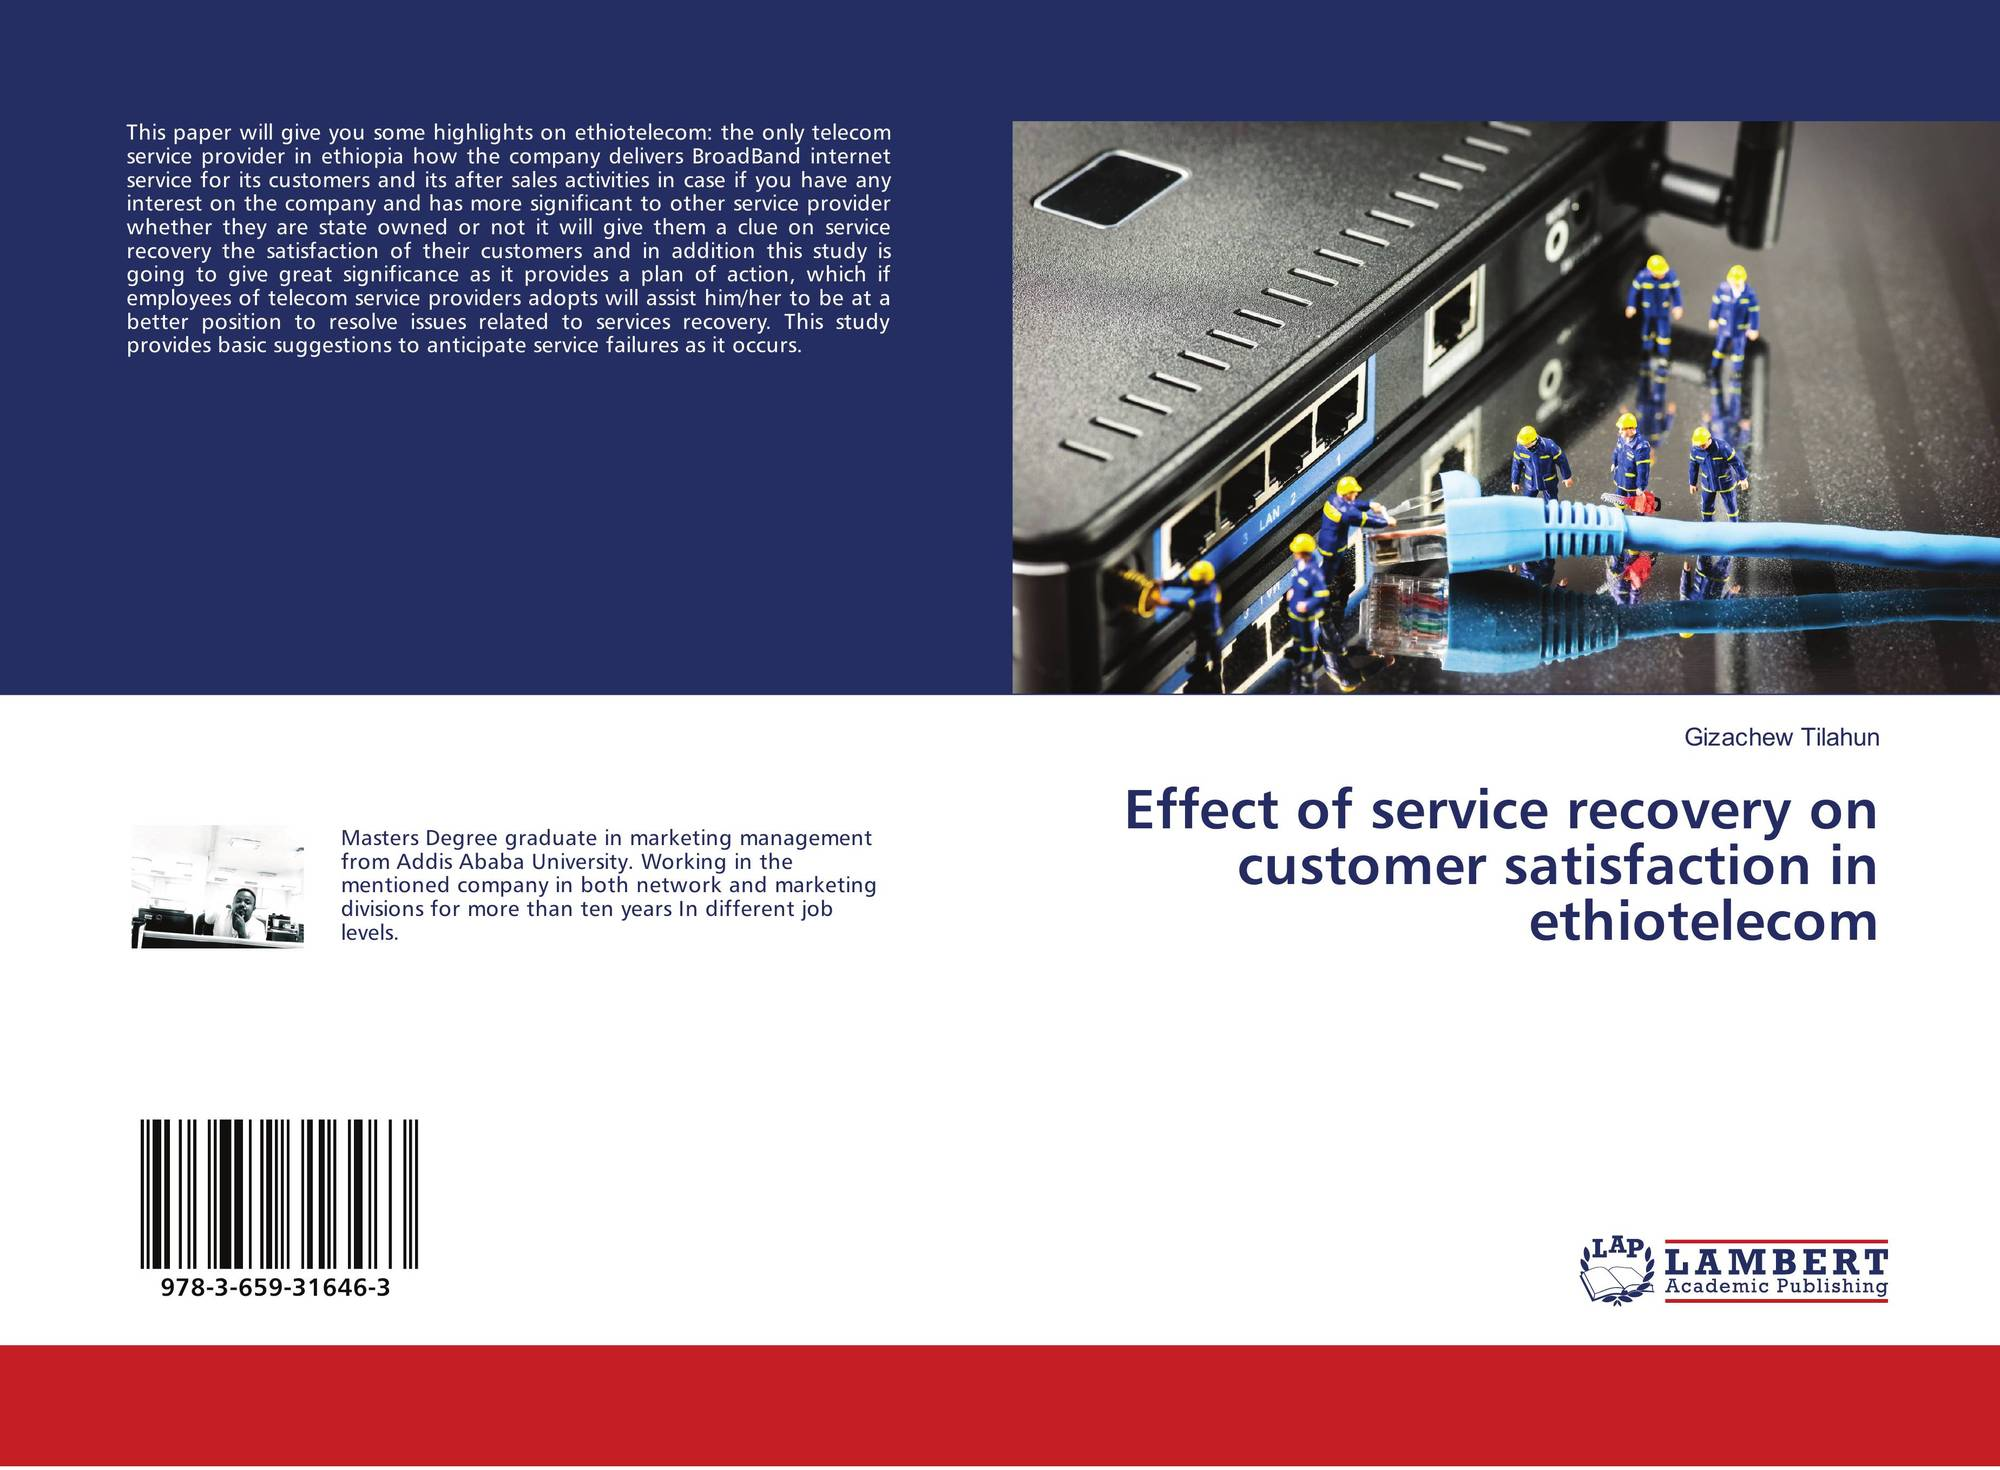 Effect of service recovery on customer satisfaction in